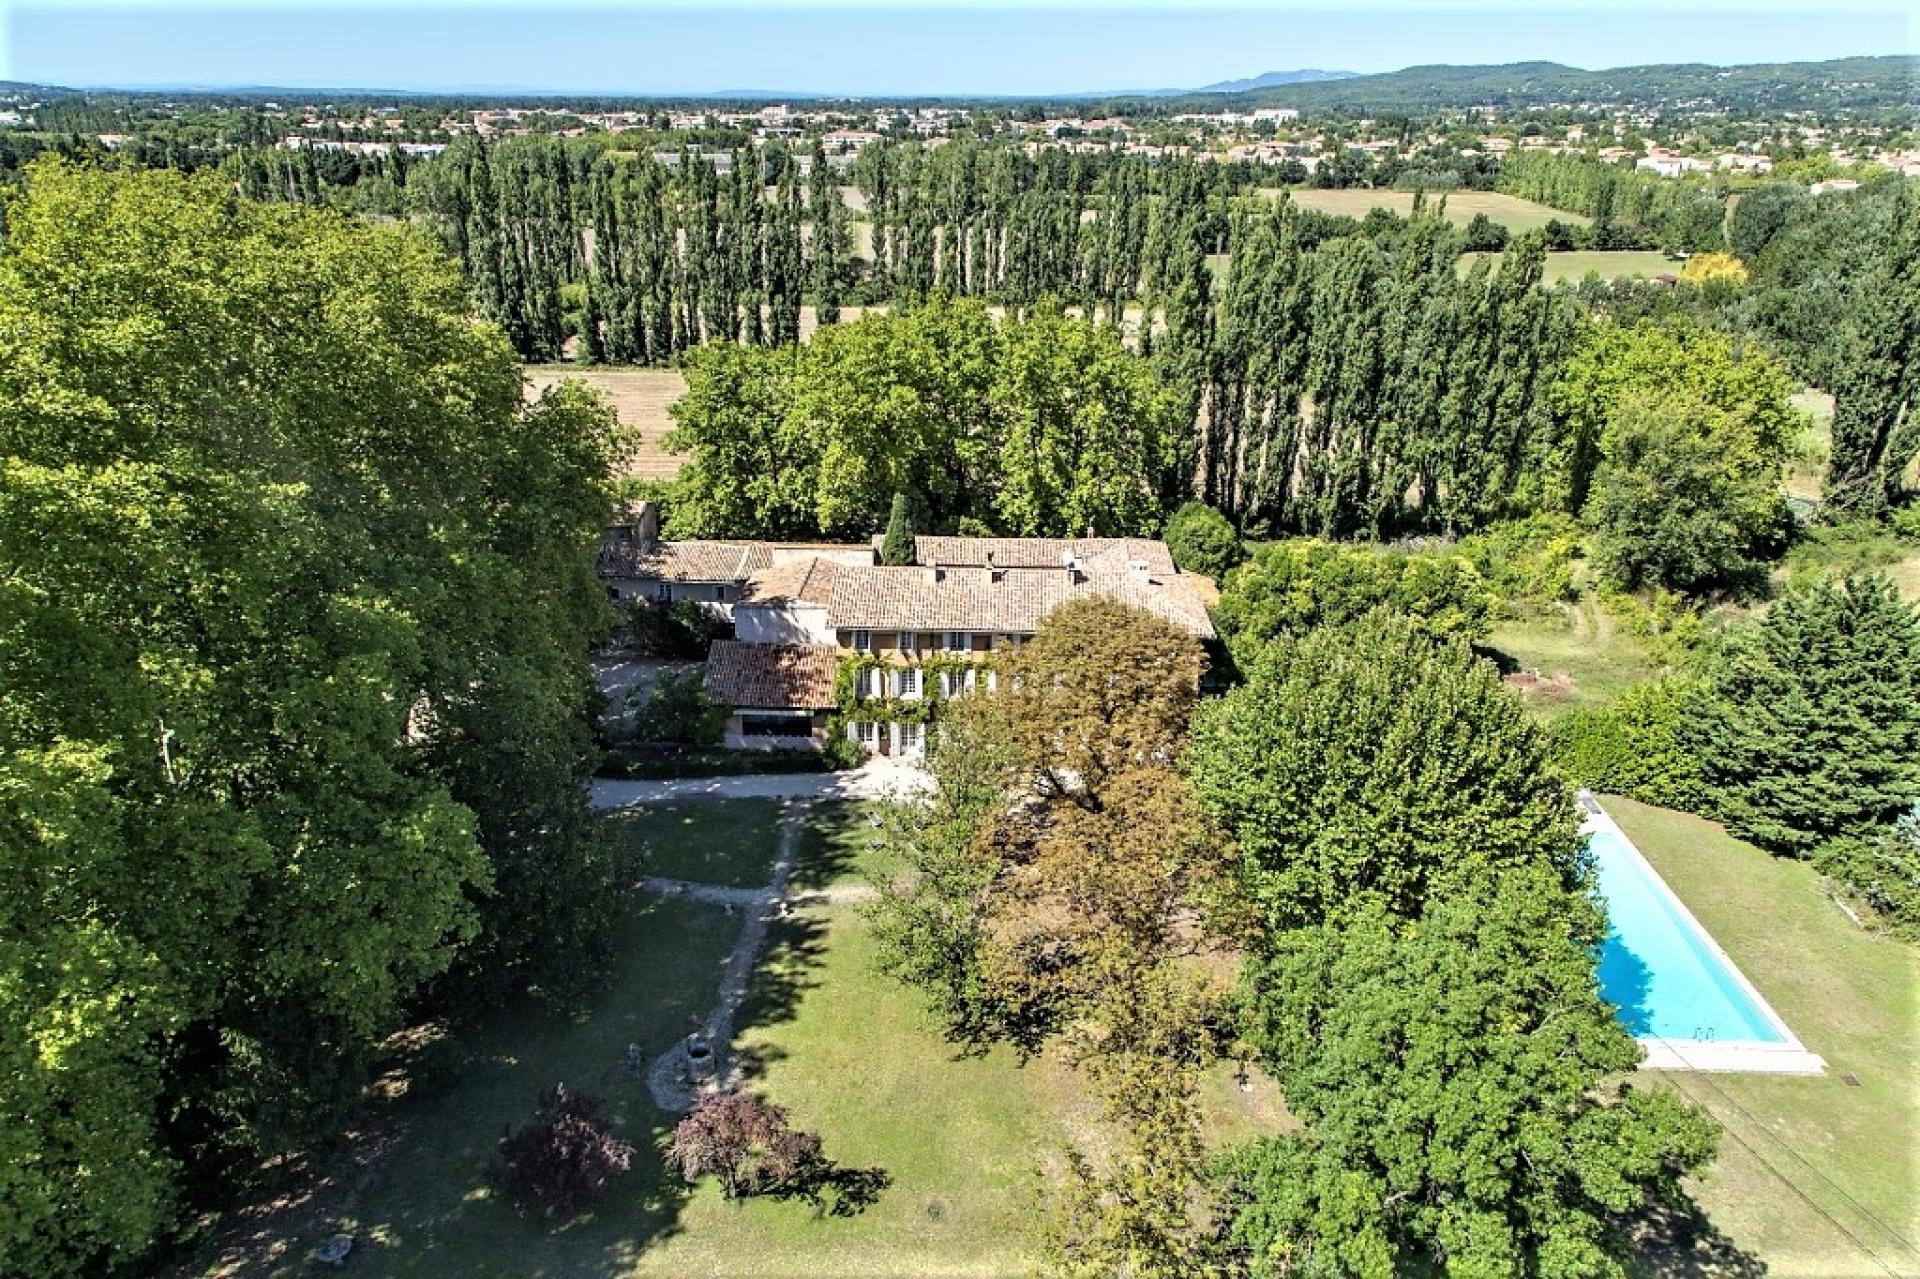 AREAL VIEW OF THE VILLA BASTIDE DE LA SORGUE